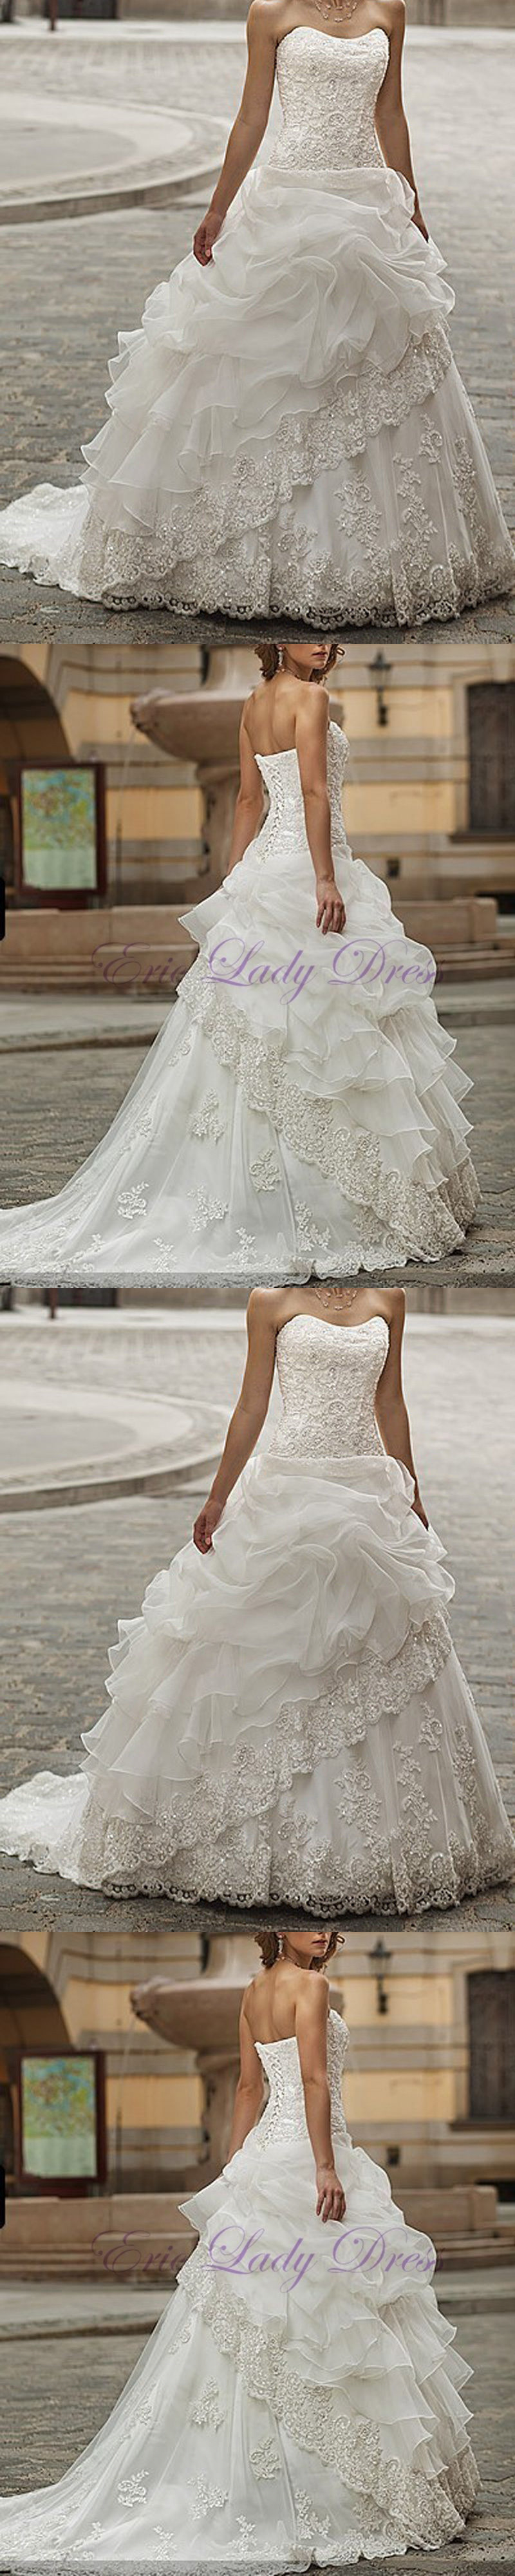 Wedding dresses long organza wedding dress bridal gown custom